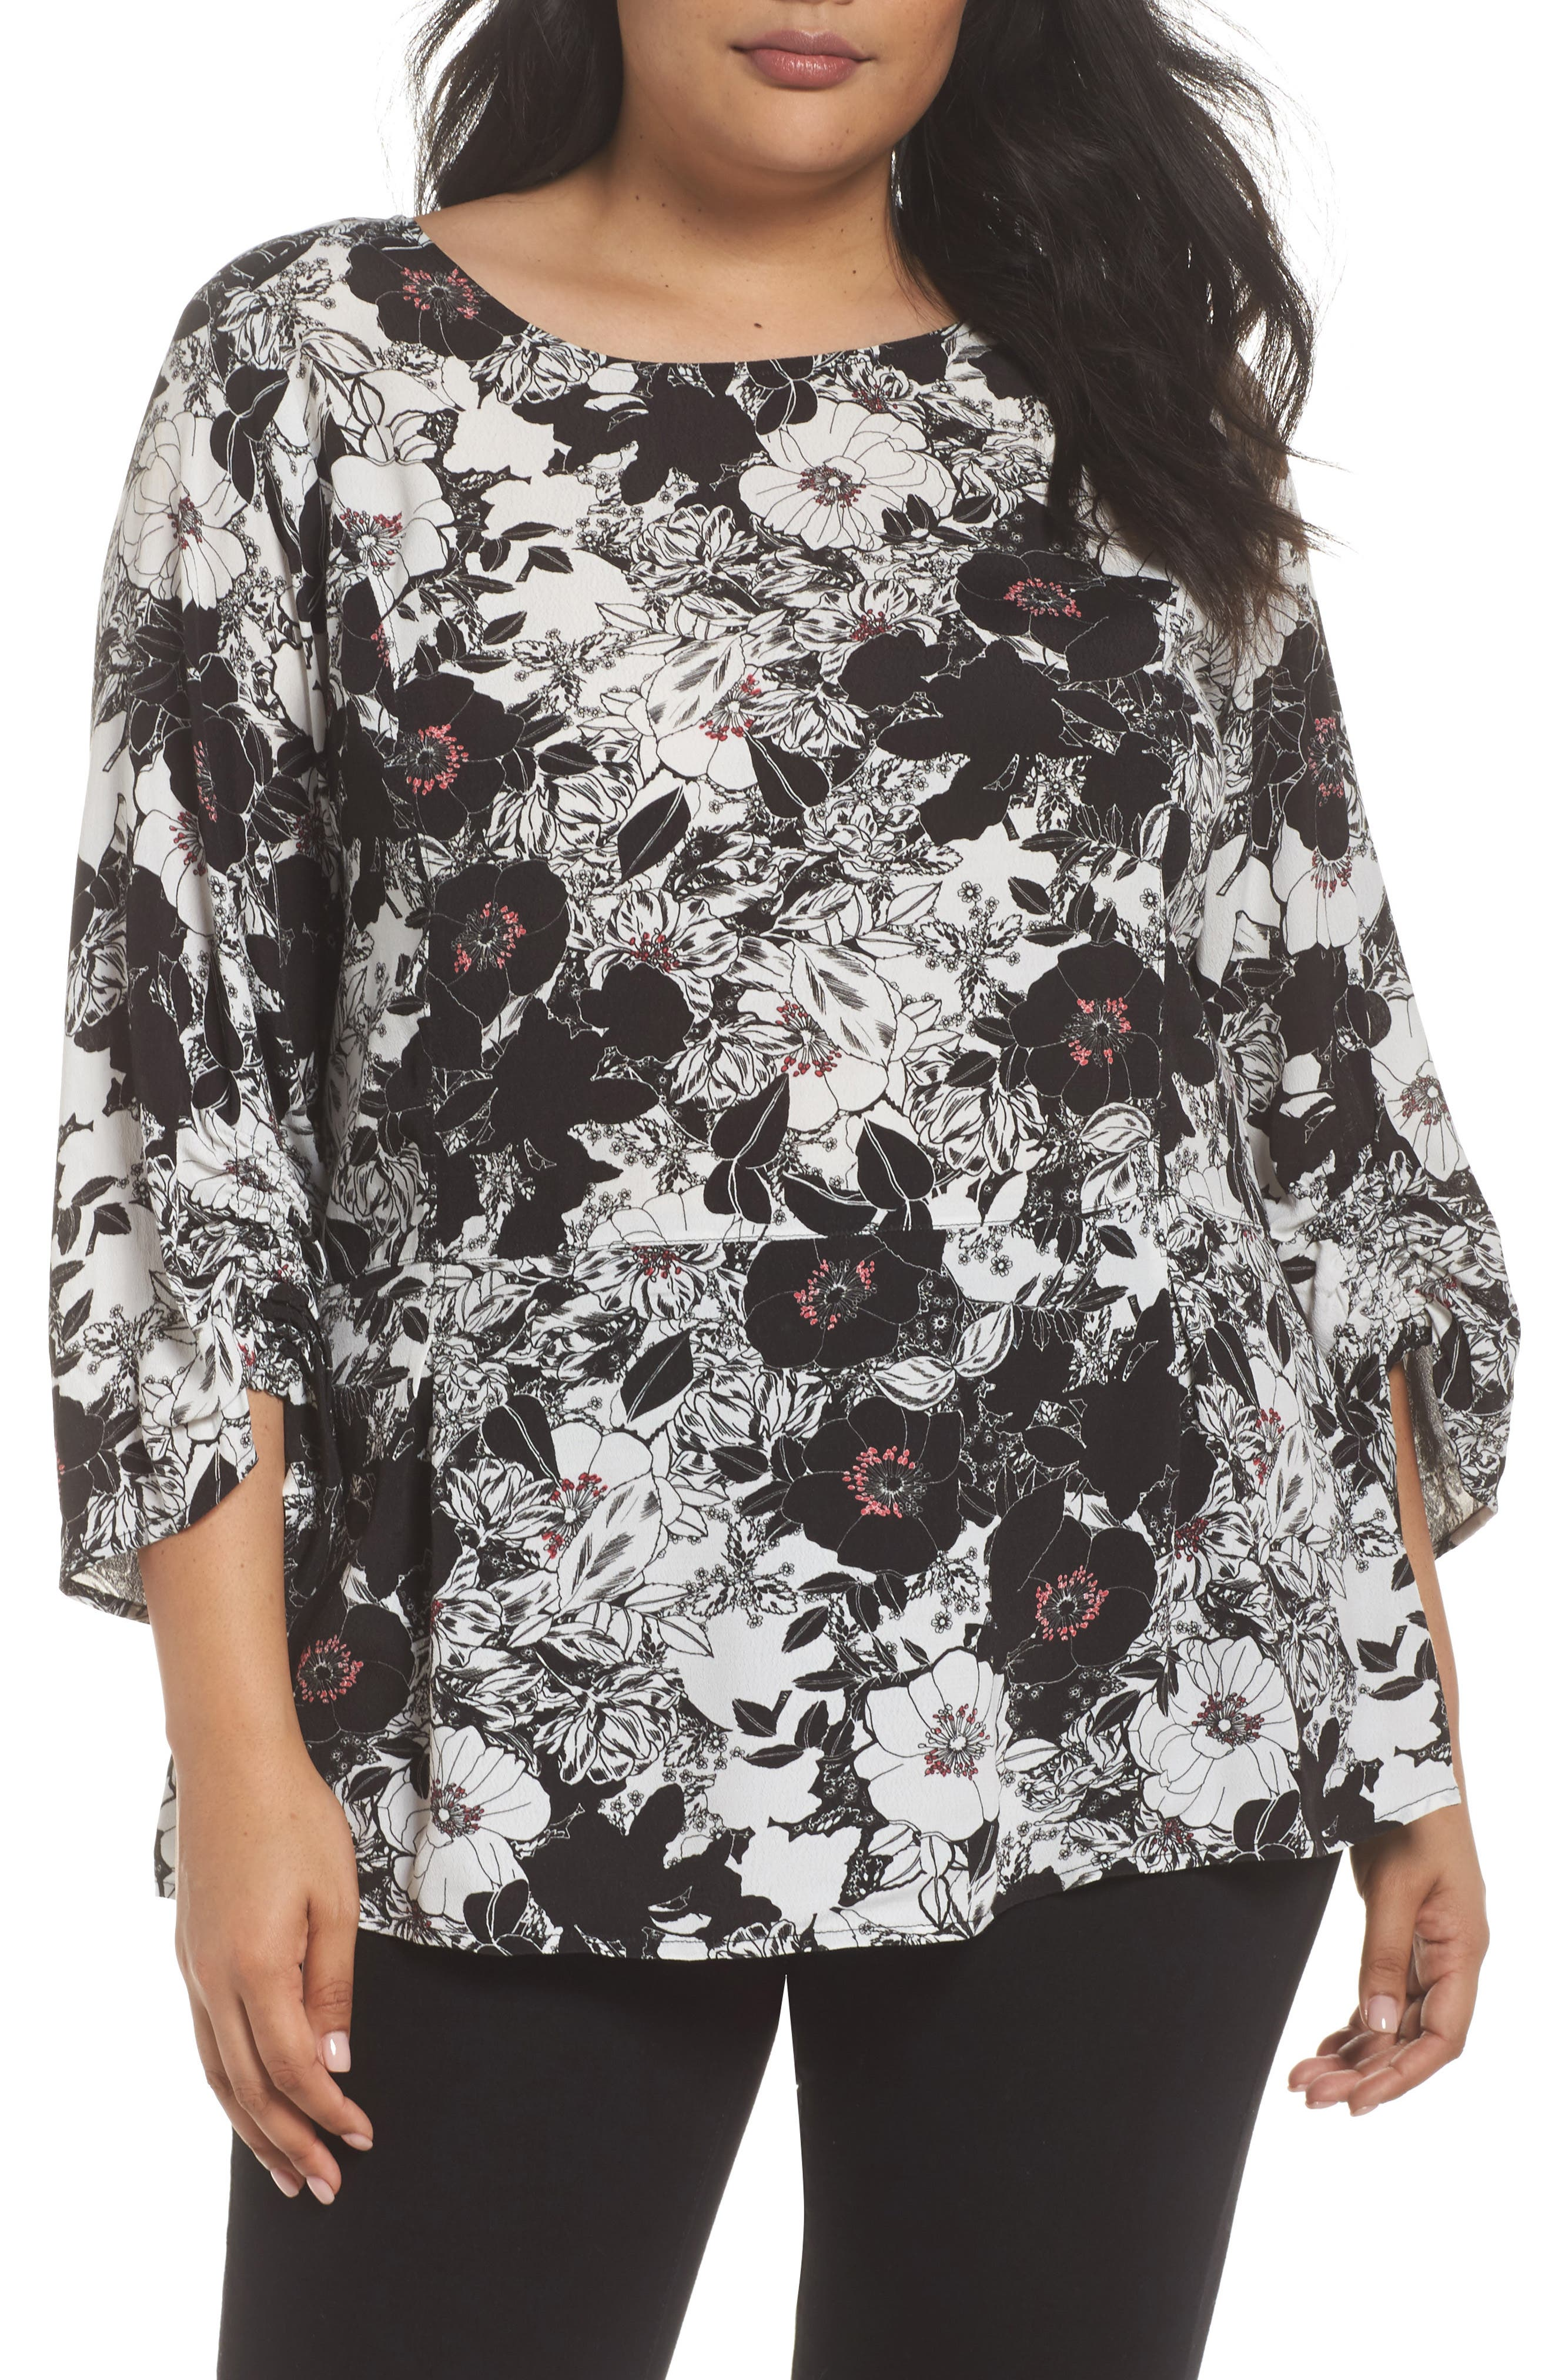 Alternate Image 1 Selected - Sejour Smocked Sleeve Top (Plus Size)